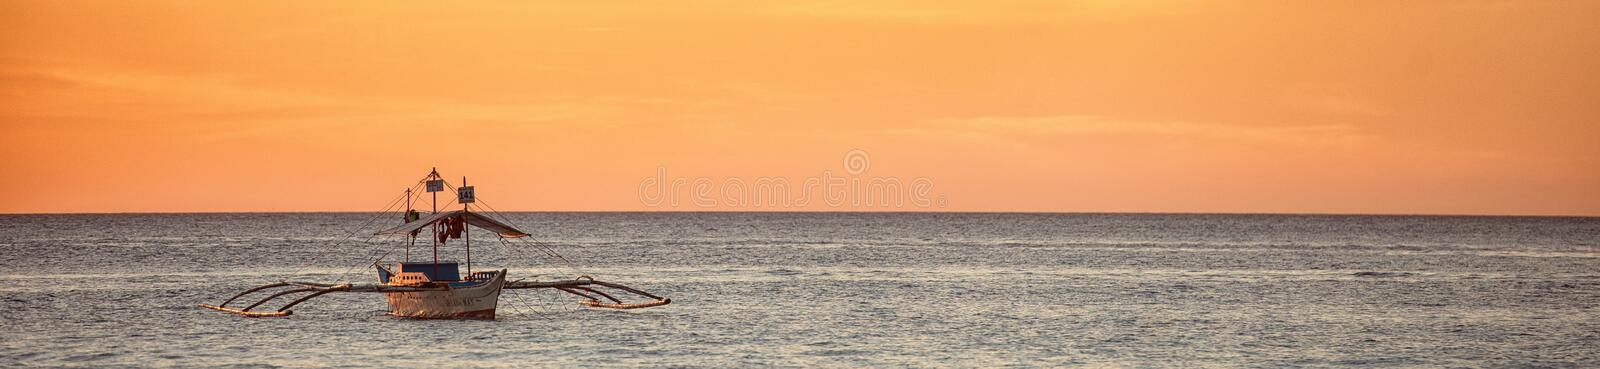 A wide view of the sea and a boat at a sunset royalty free stock image